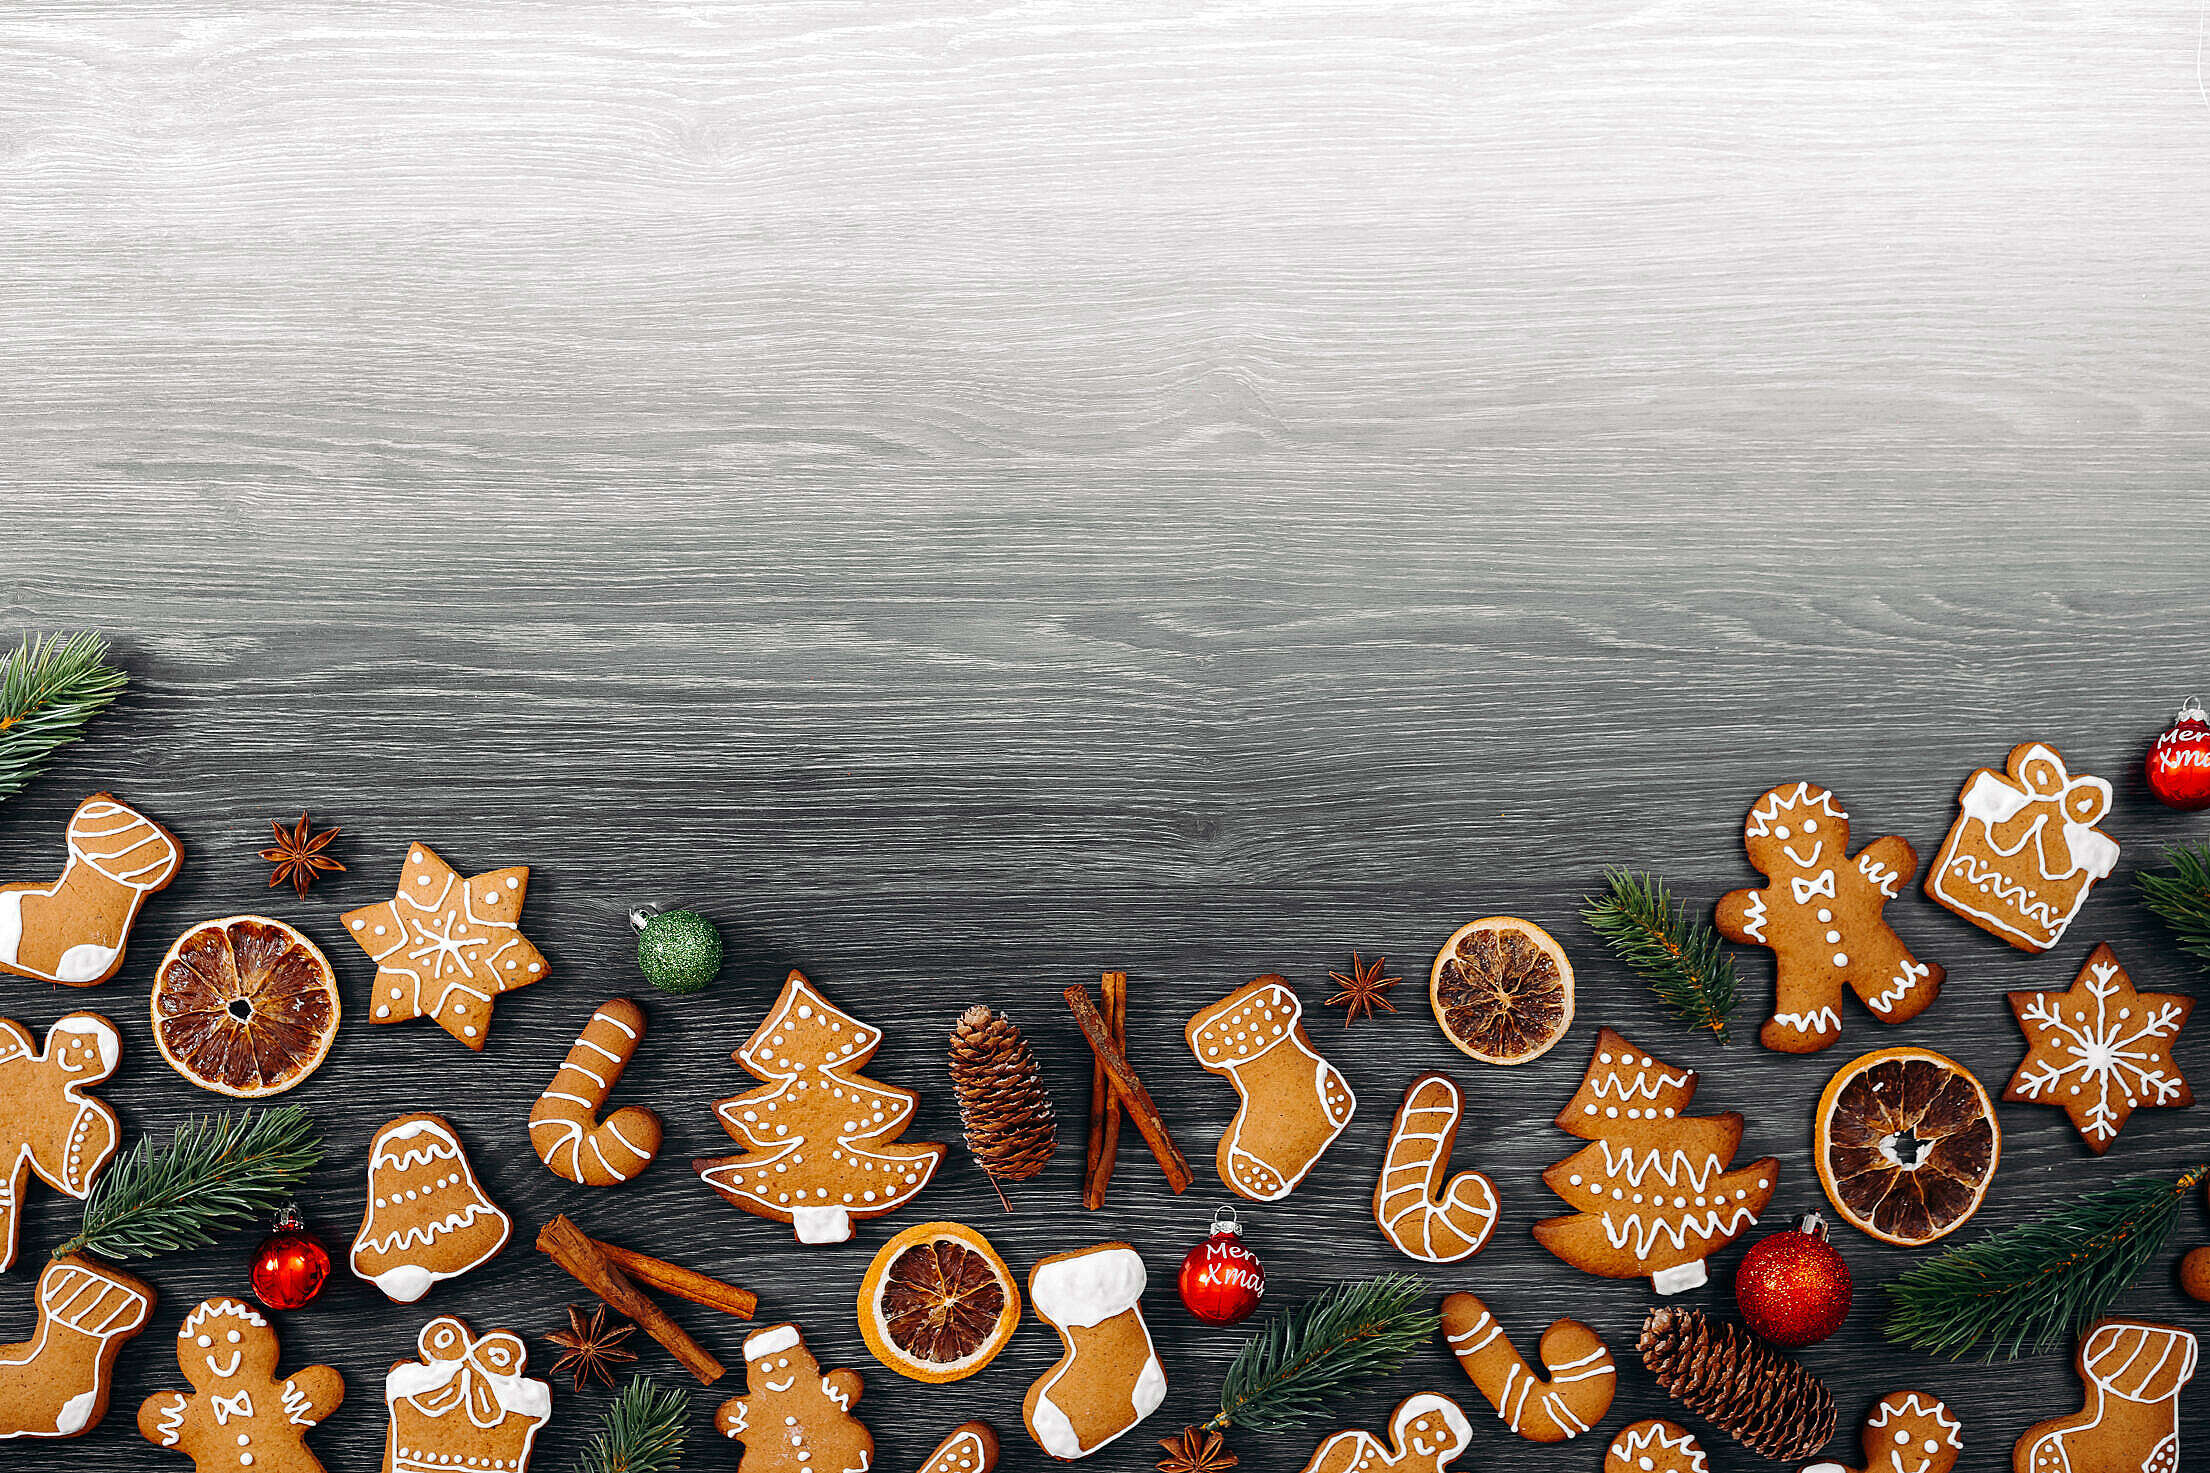 Christmas Background for Text Free Stock Photo